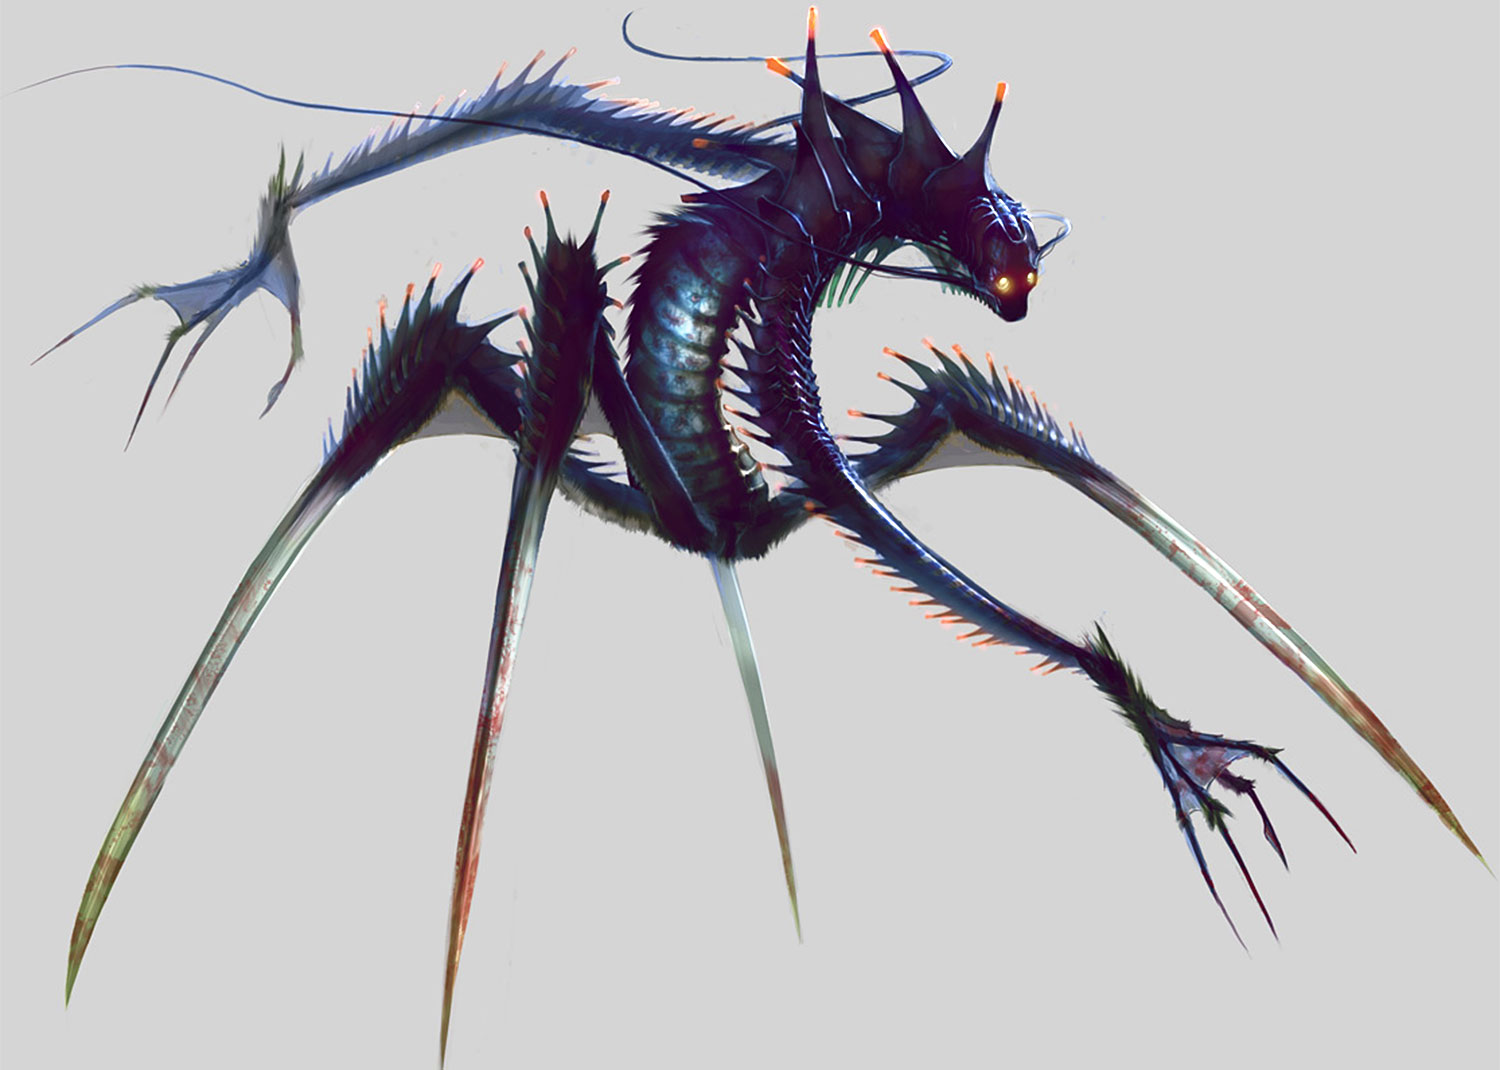 Xcom Chryssalids Enemy Unknown Insect Alien Monster Profile